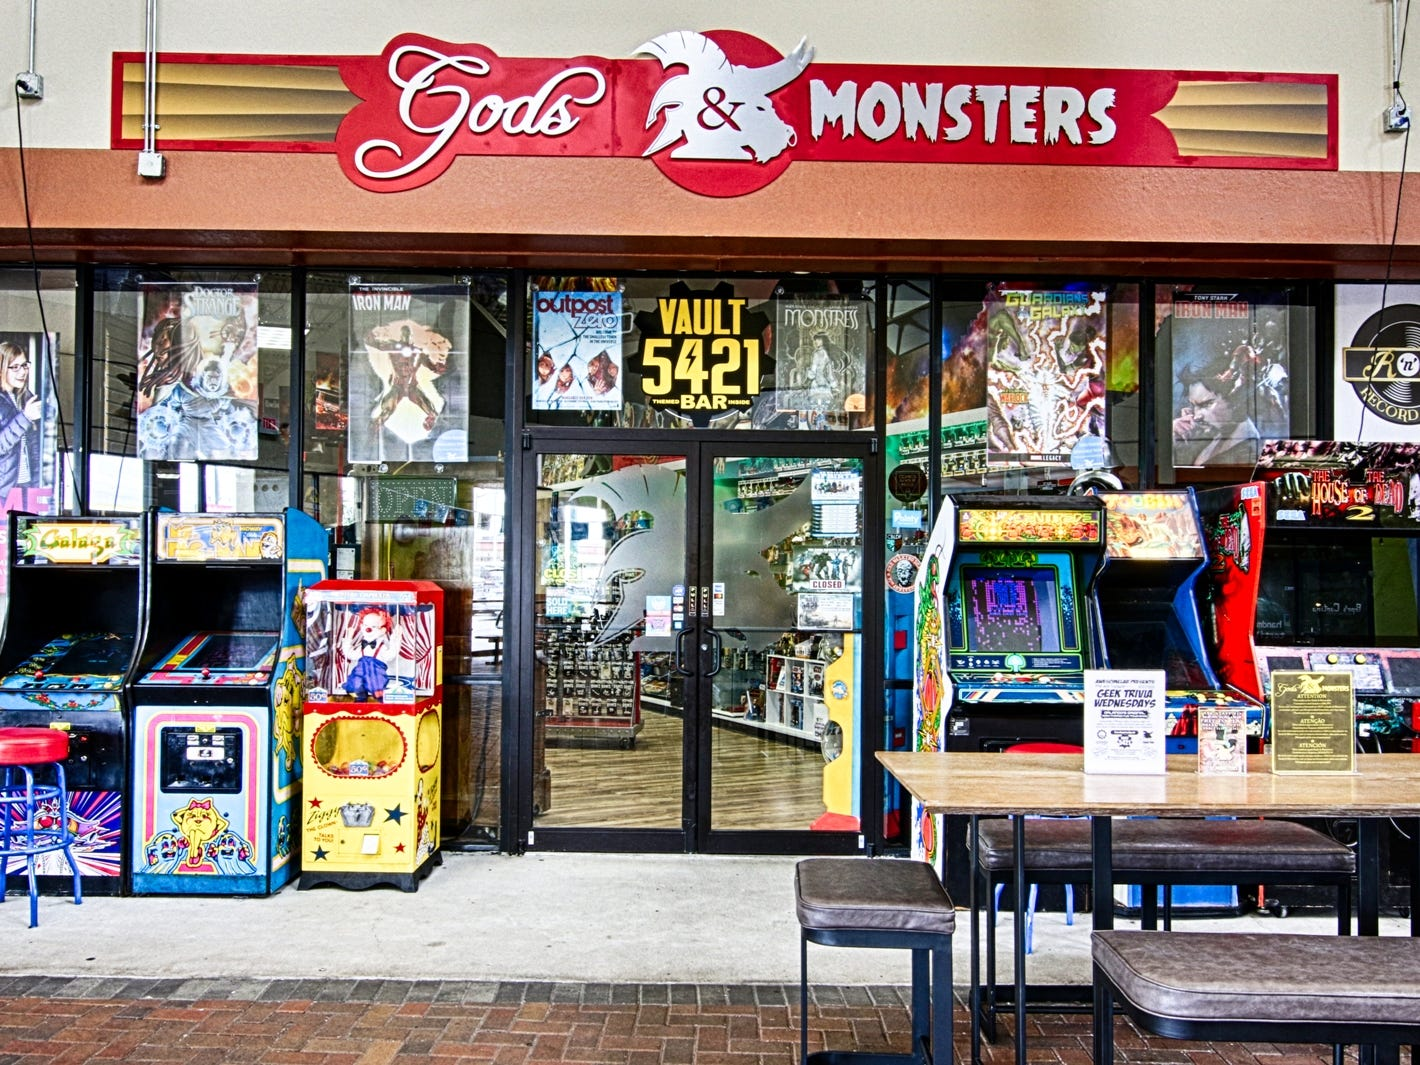 Gods & Monsters, a comics shop and toy store in Orlando, Florida, offers plenty of reading material along with T-shirts, figurines and giant displays. It also has an adults-only bar, Vault 5421.